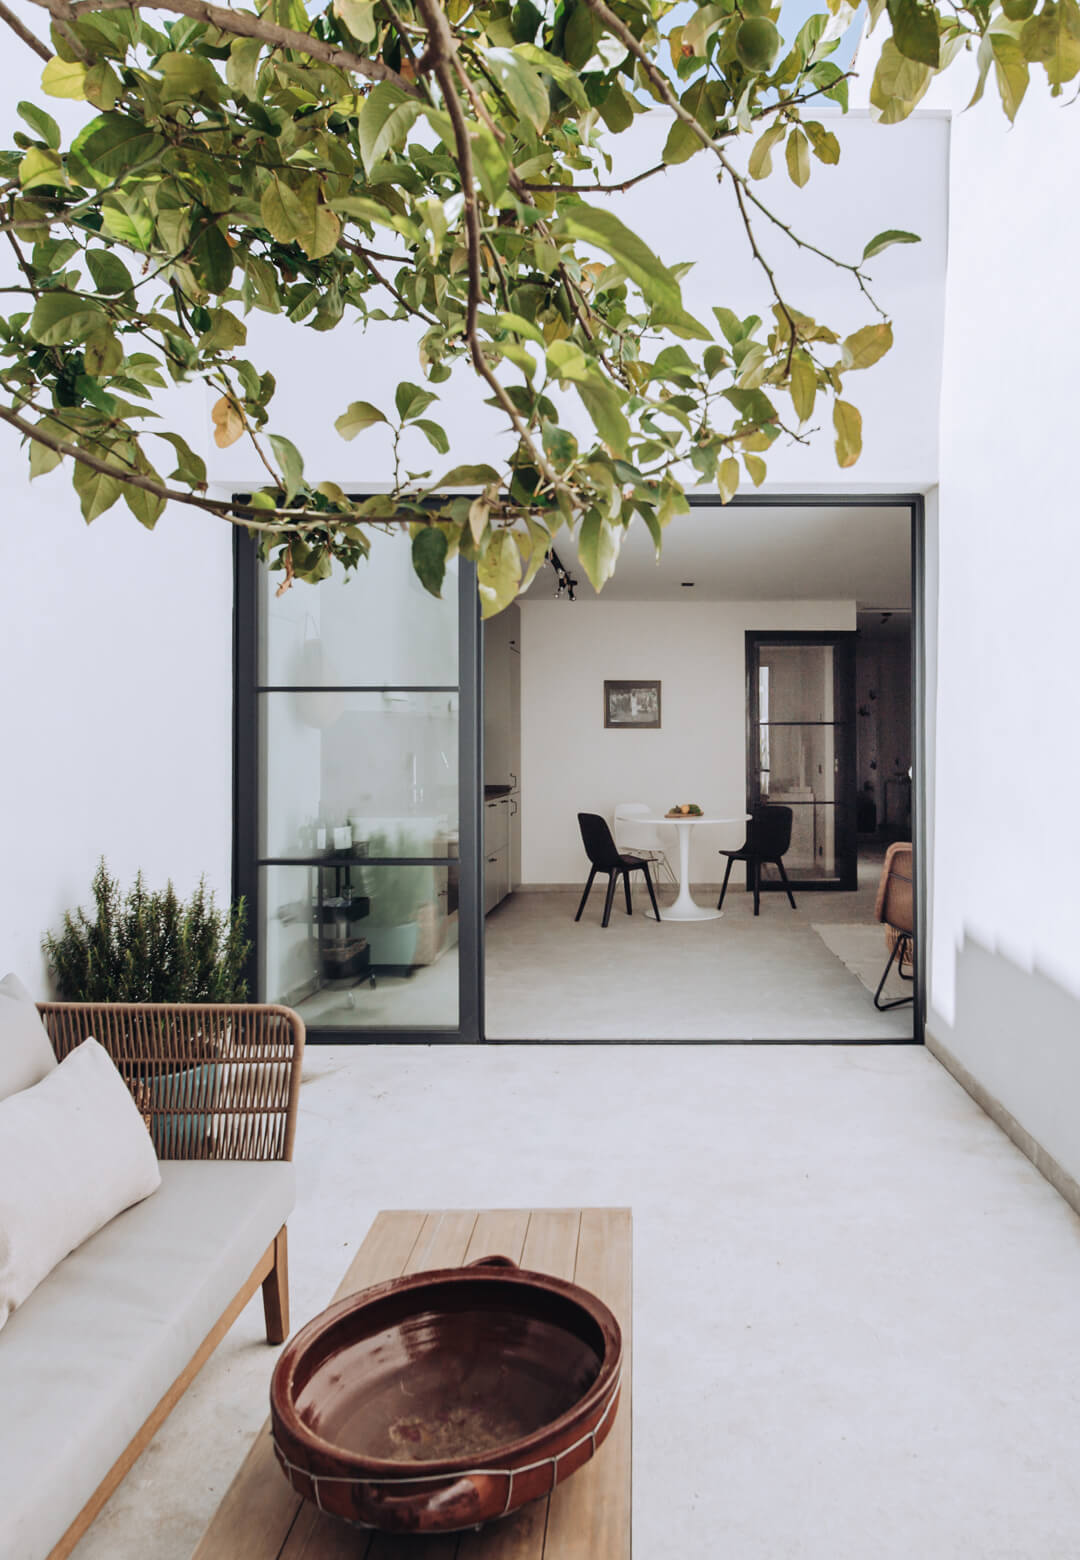 A private patio extends from the living room, bringing in natural light to the Portixol | Home designed by PMA Studio | Portixol House by PMA Studio | STIRworld